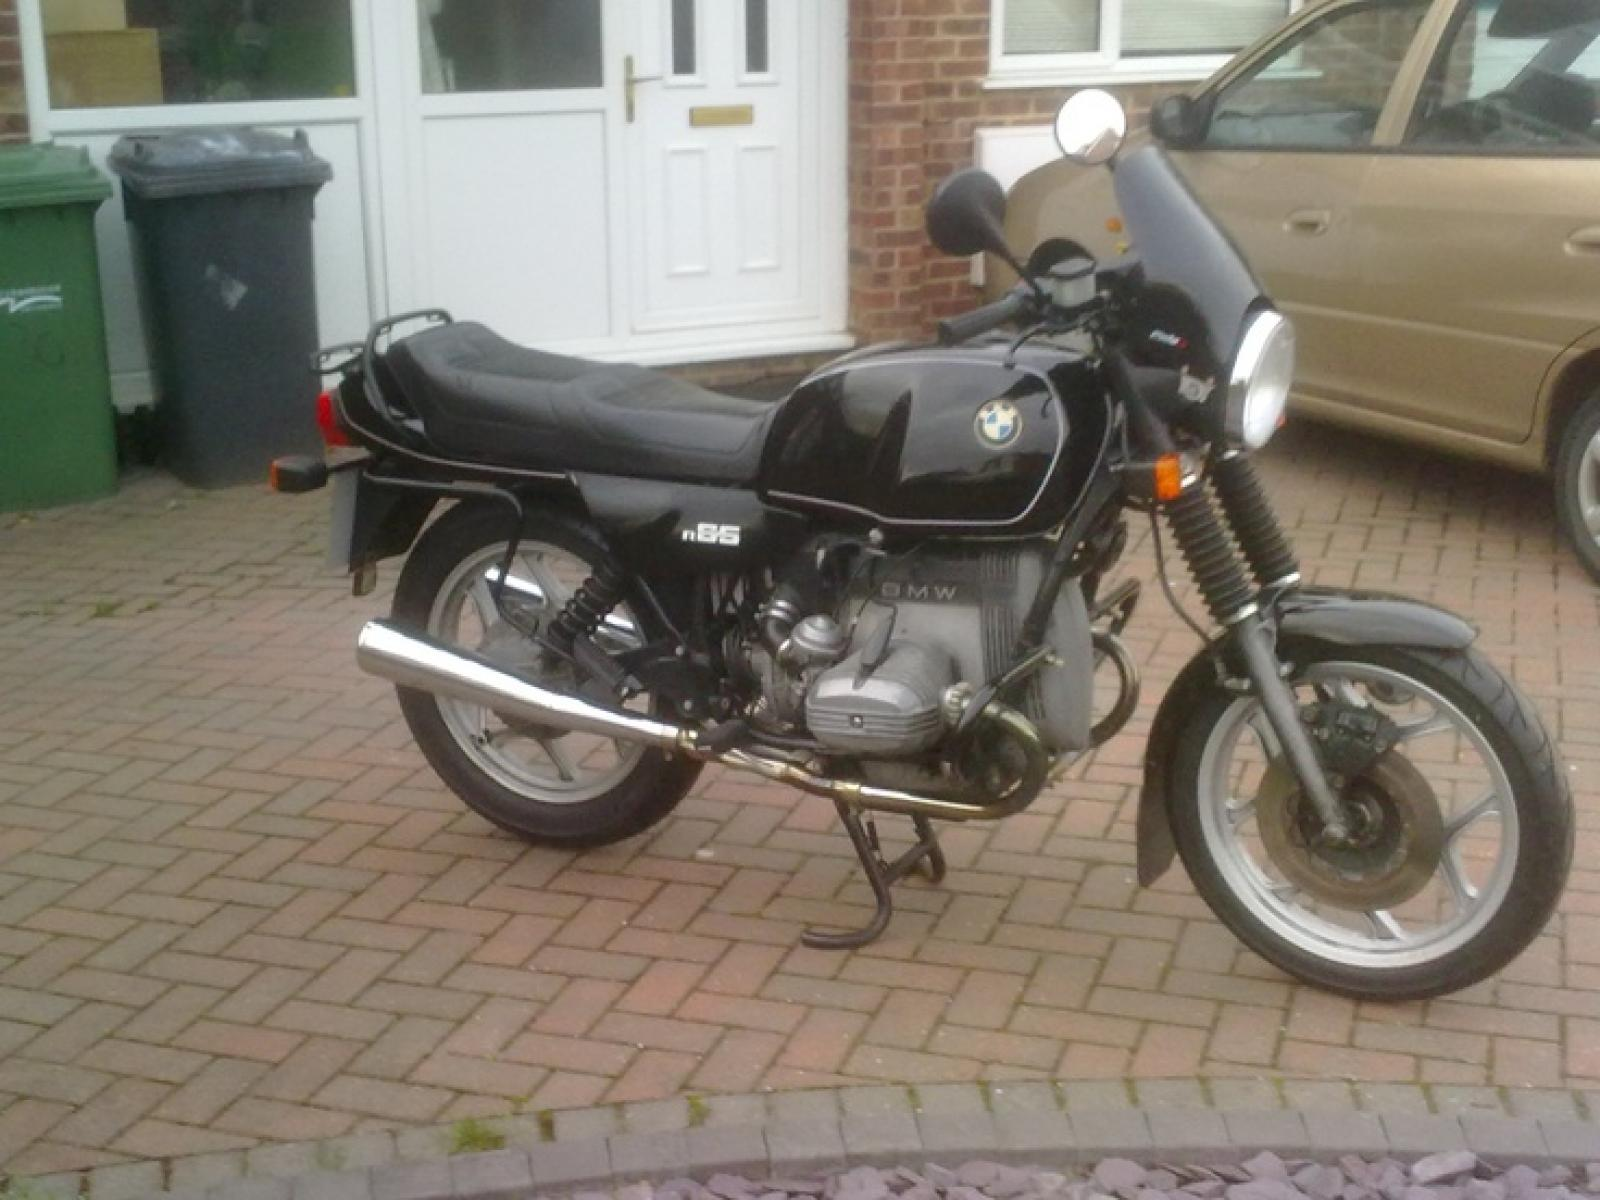 BMW R65 (reduced effect) 1989 images #14540